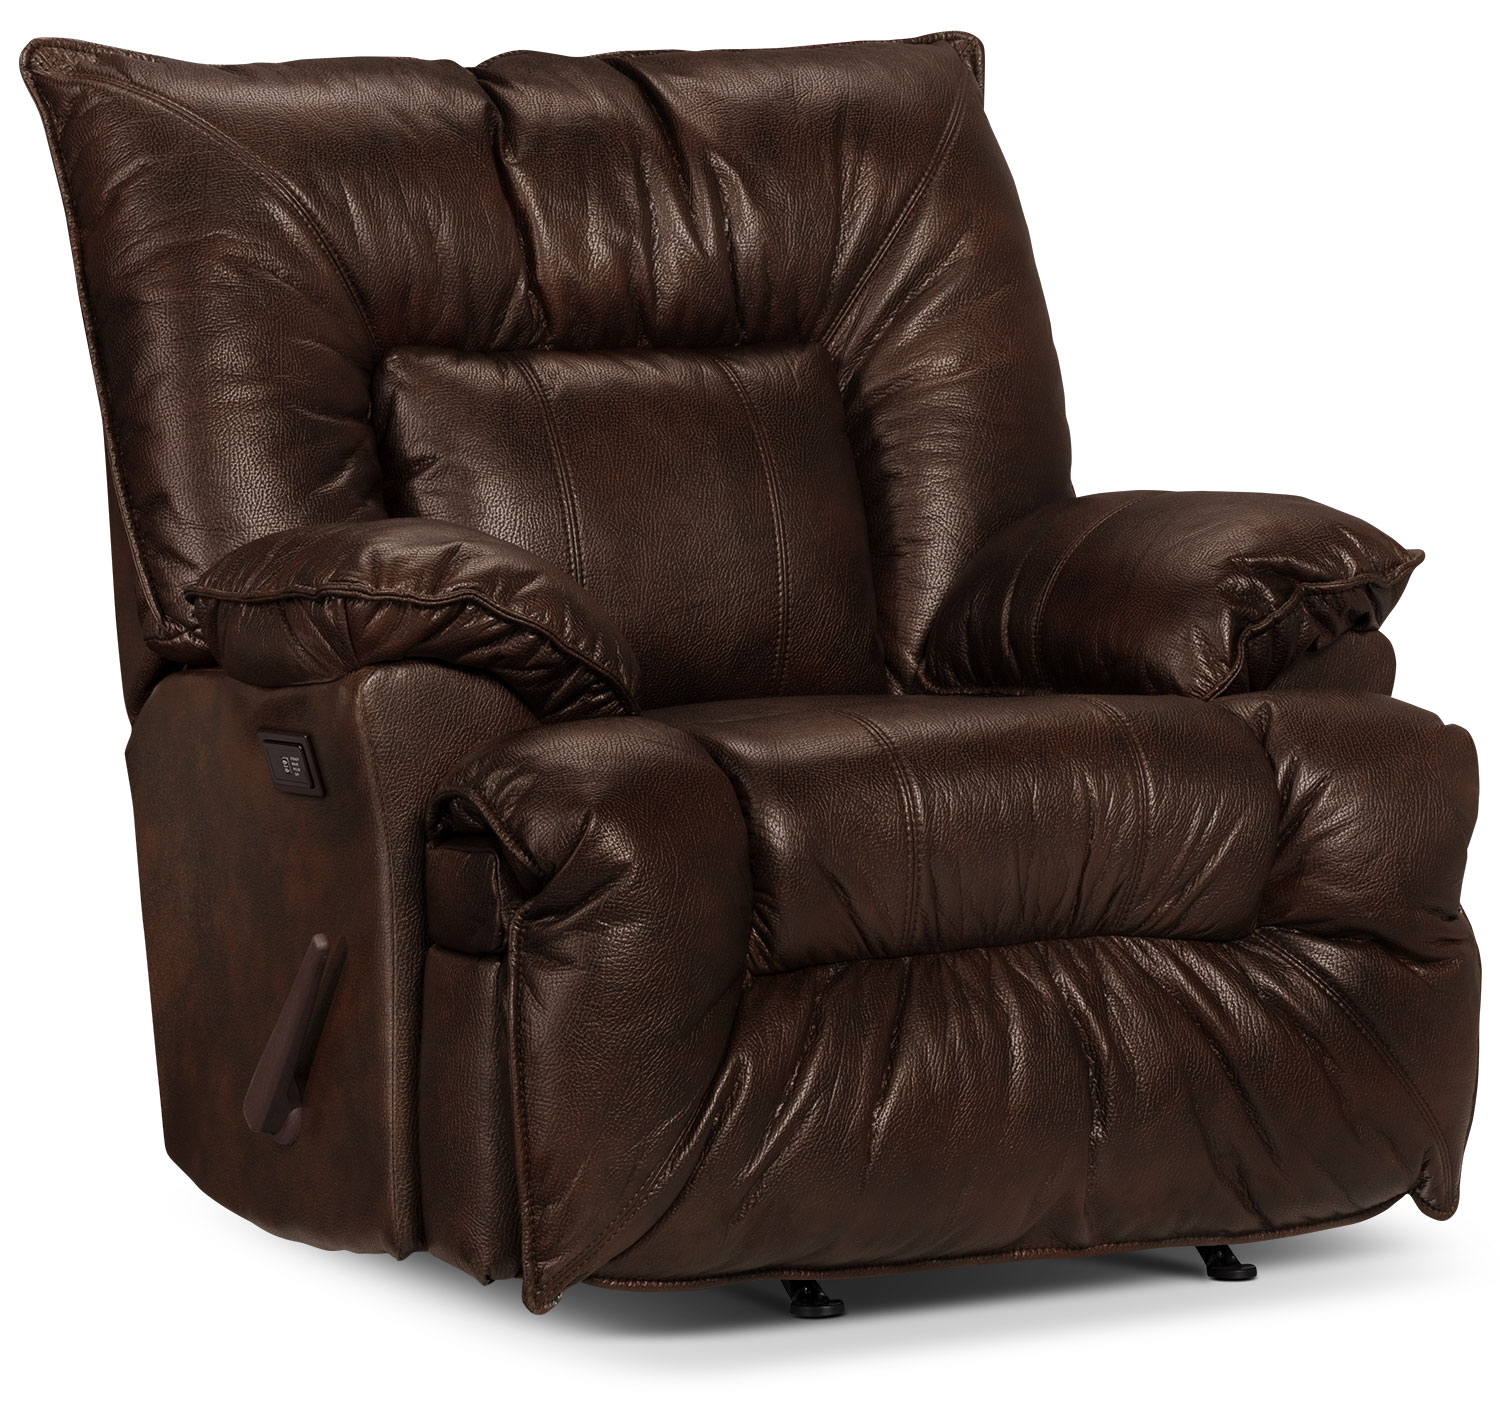 Designed2B Recliner 7726 Genuine Leather Massage Chair - Chocolate